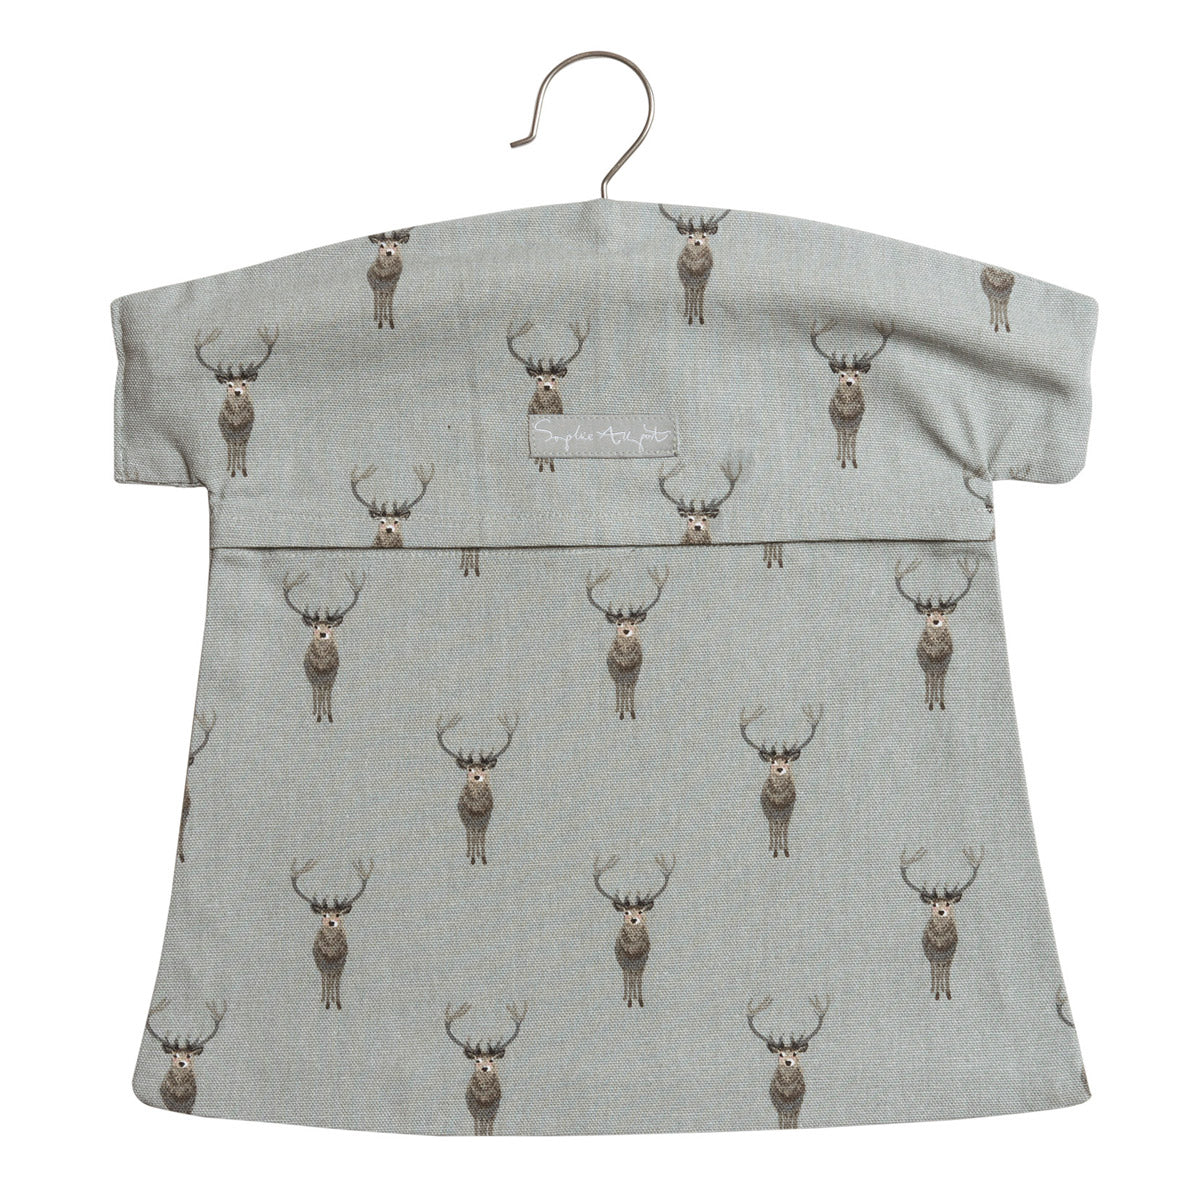 Highland Stag Peg Bag